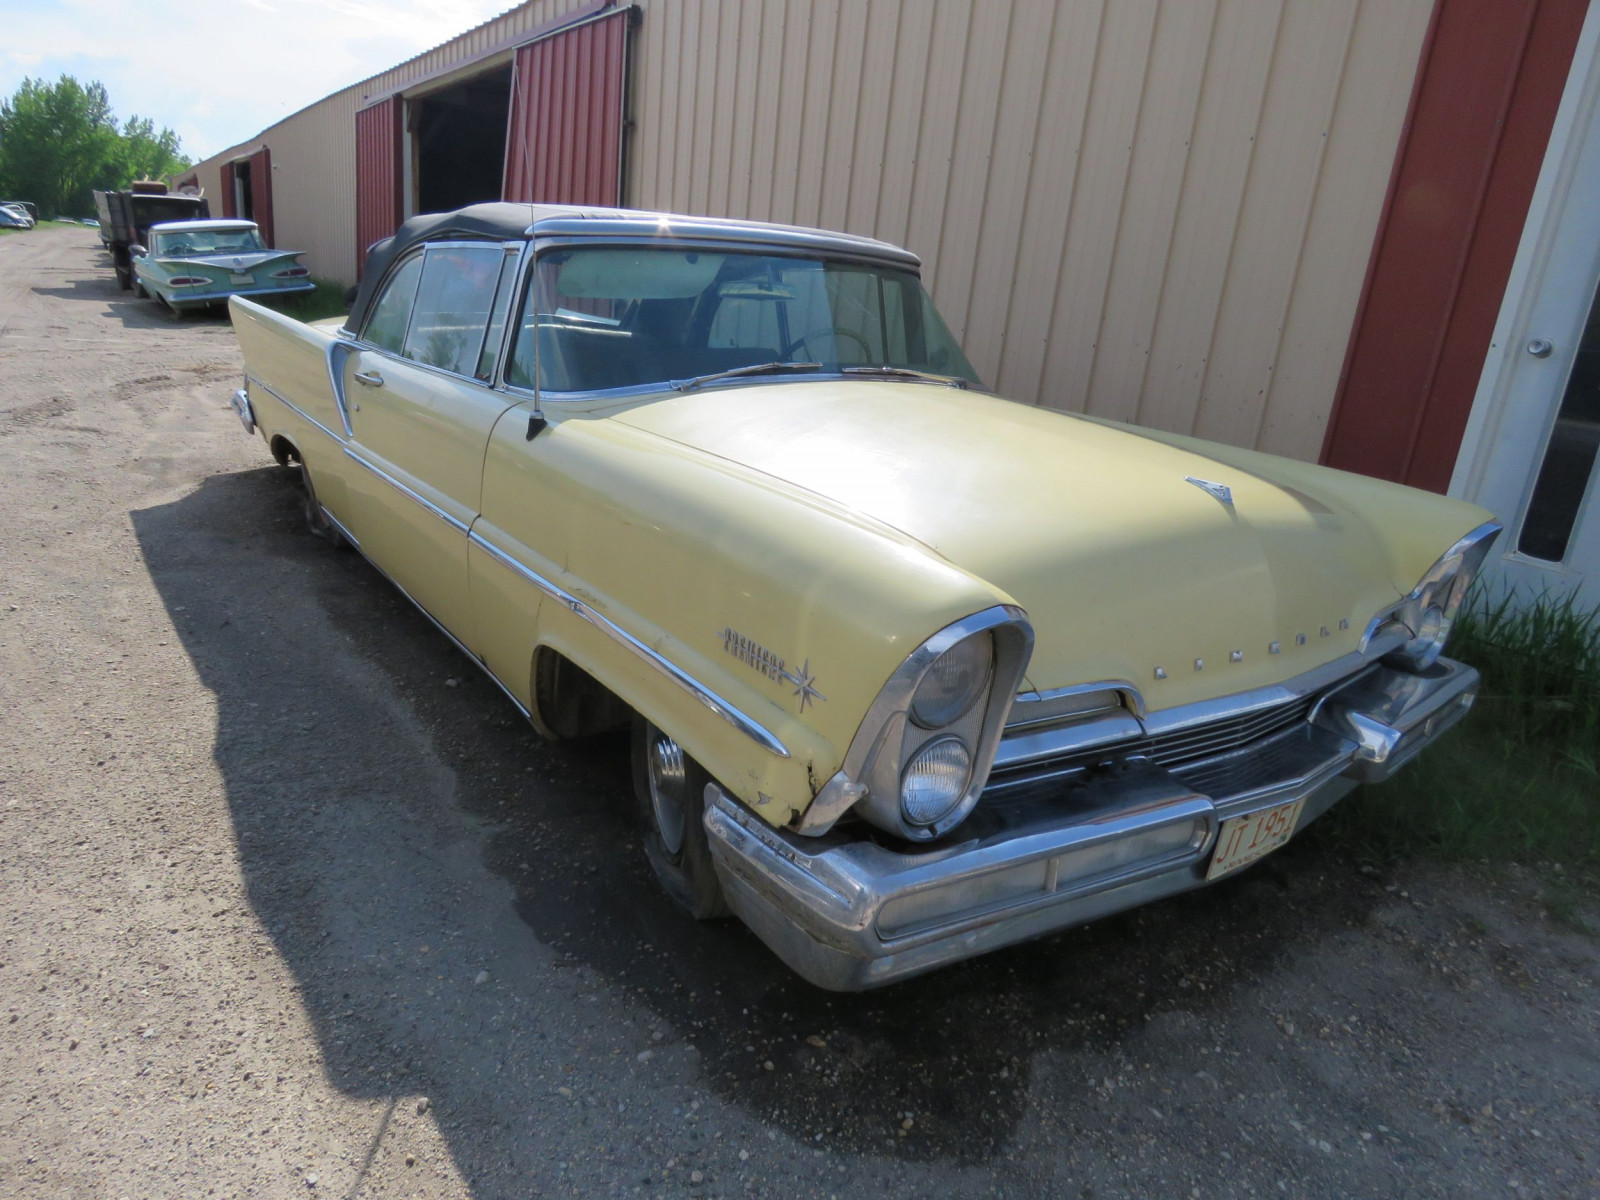 1957 Lincoln Premier Convertible - Image 3